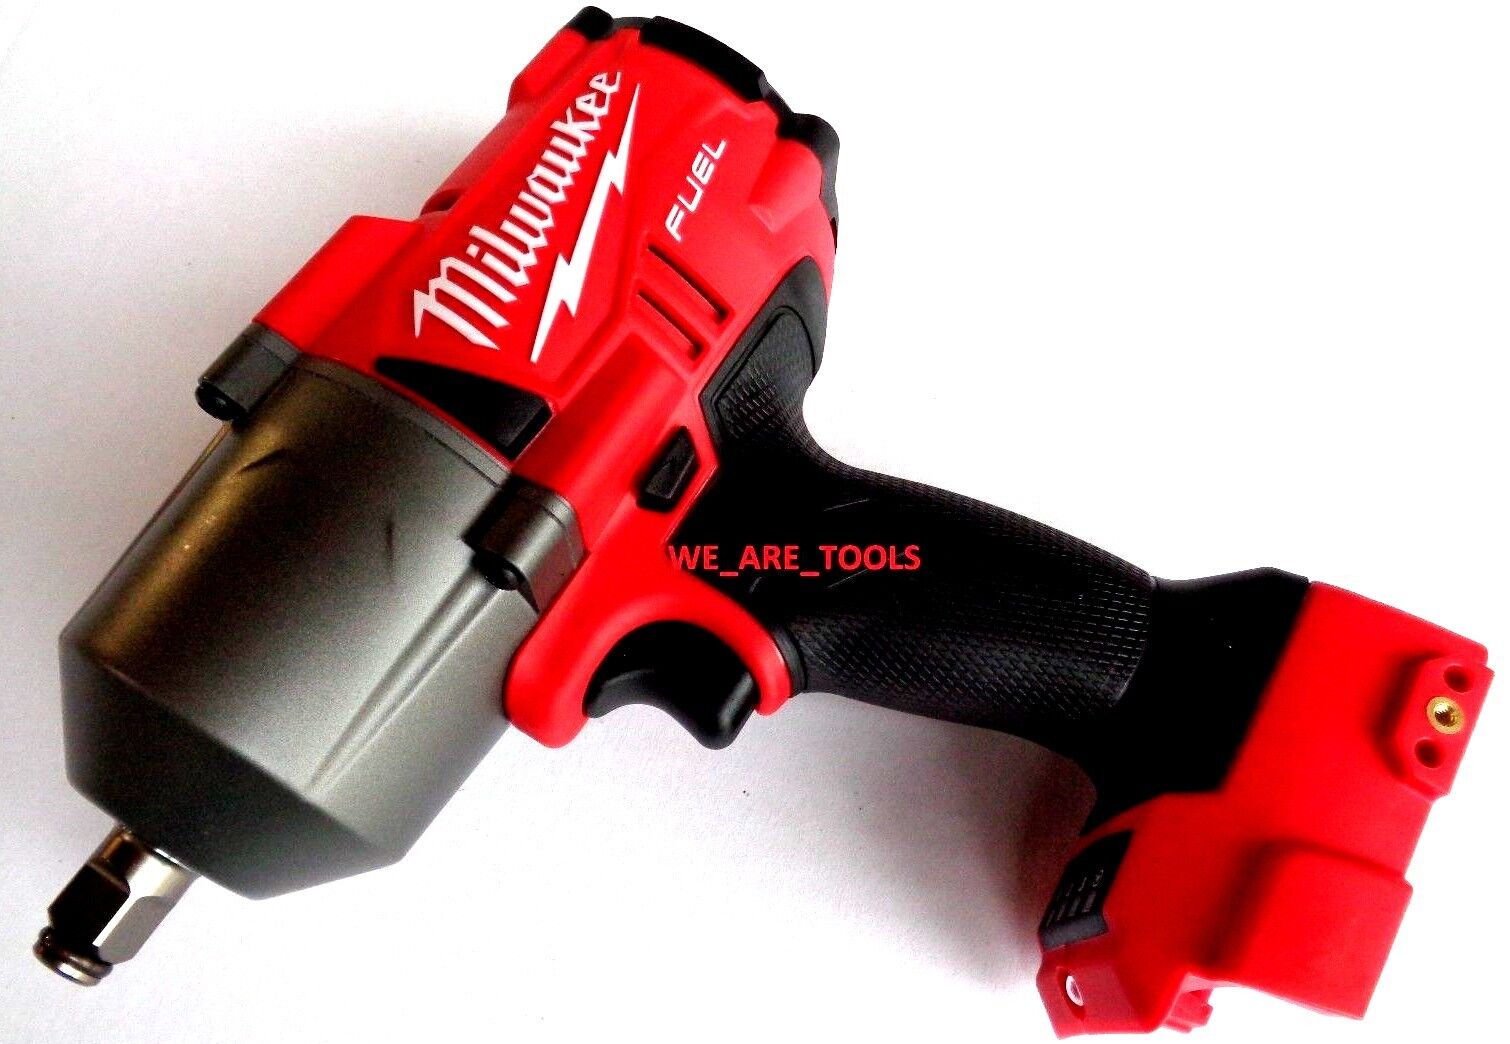 Milwaukee FUEL 2767-20 18V 1/2 Impact Wrench,(1) 48-11-1850 Battery, Charger M18 7